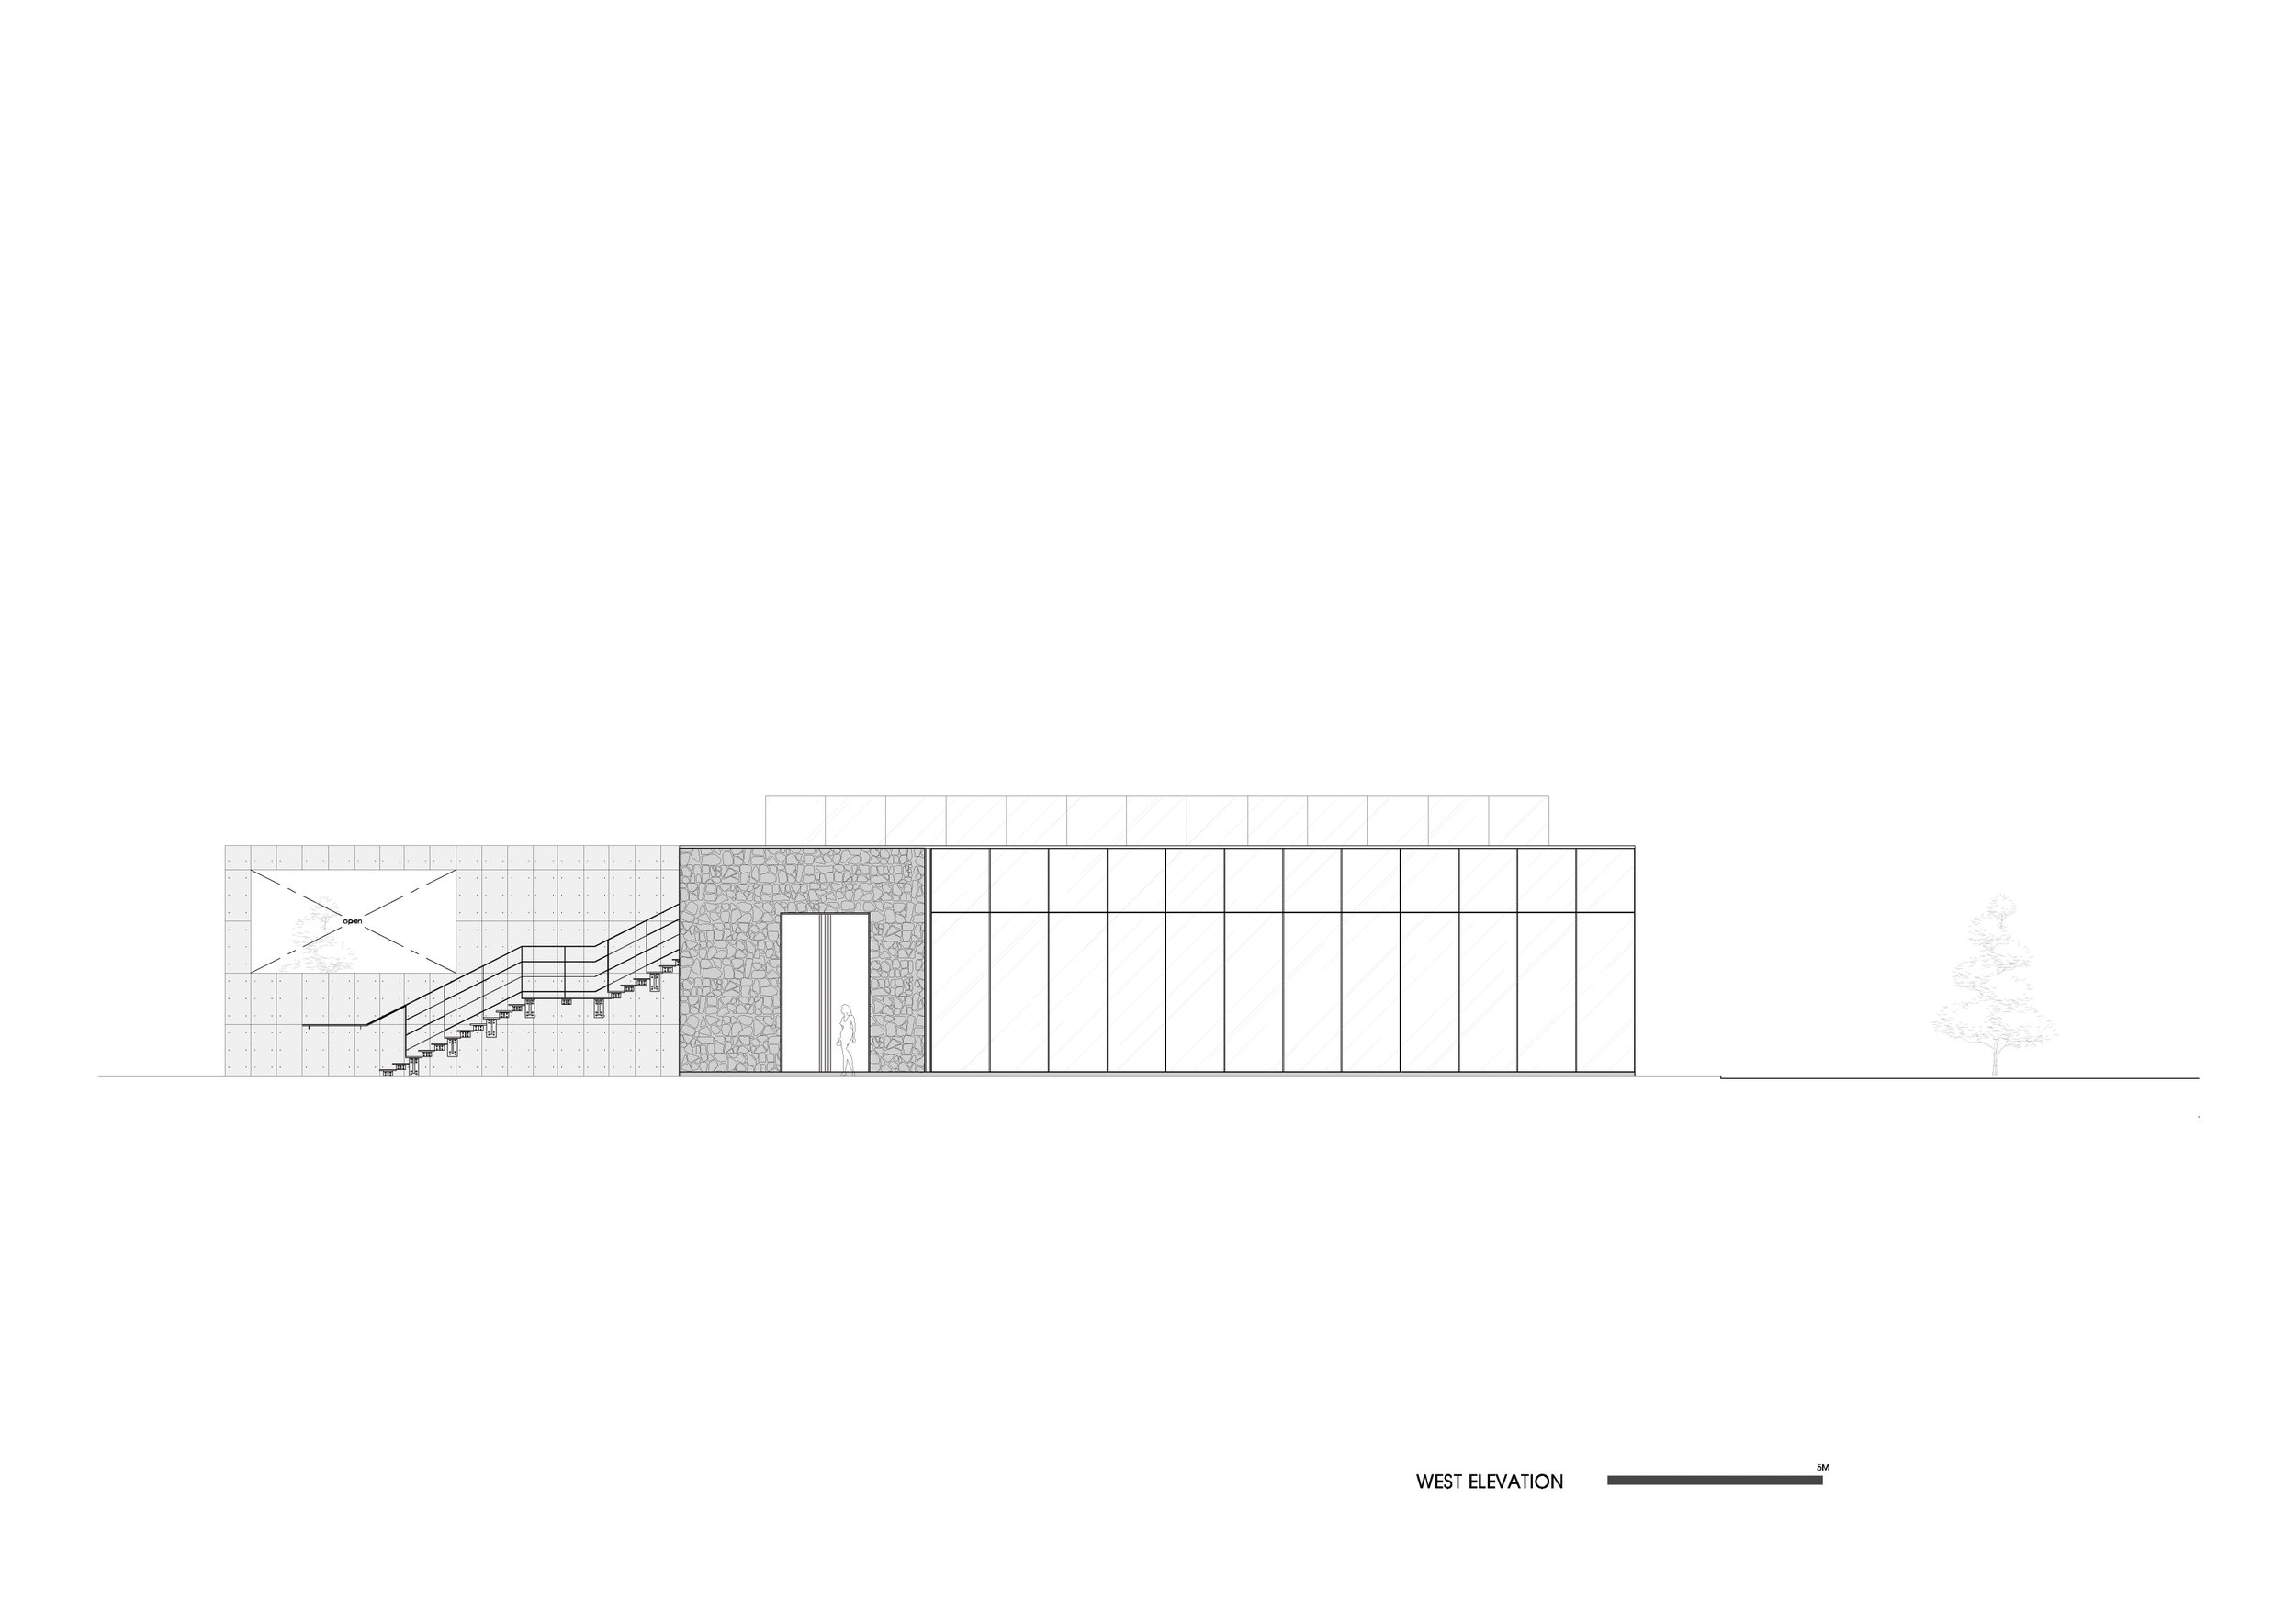 04 WEST ELEVATION copy.jpg